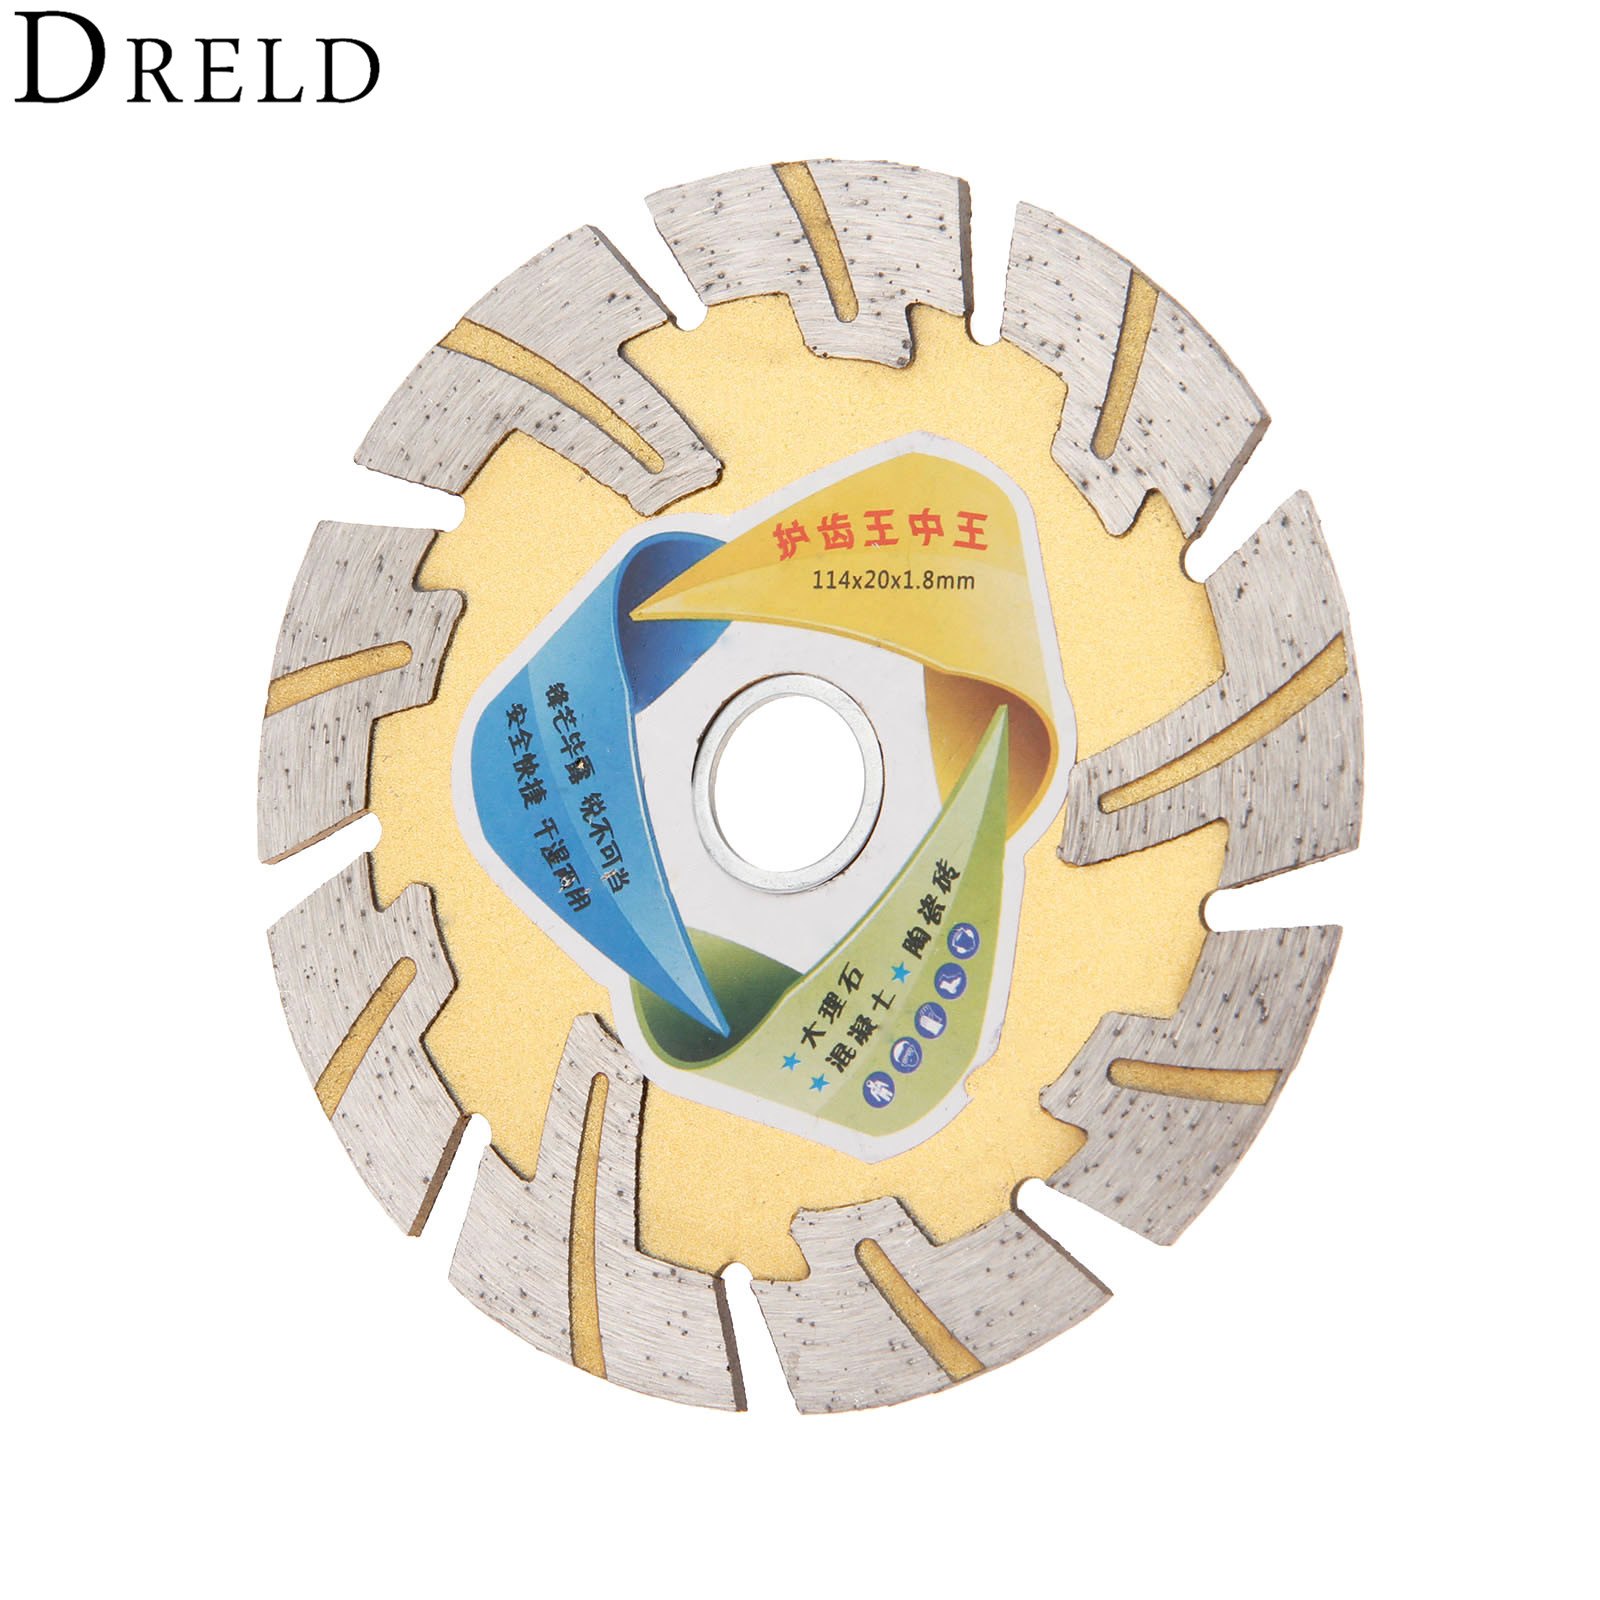 DRELD 114mm Diamond Saw Blade Metal Alloy Wheel Cutting Disc For Marble Ceramic Tile Angle Grinder Grinding Stone Brick Concrete